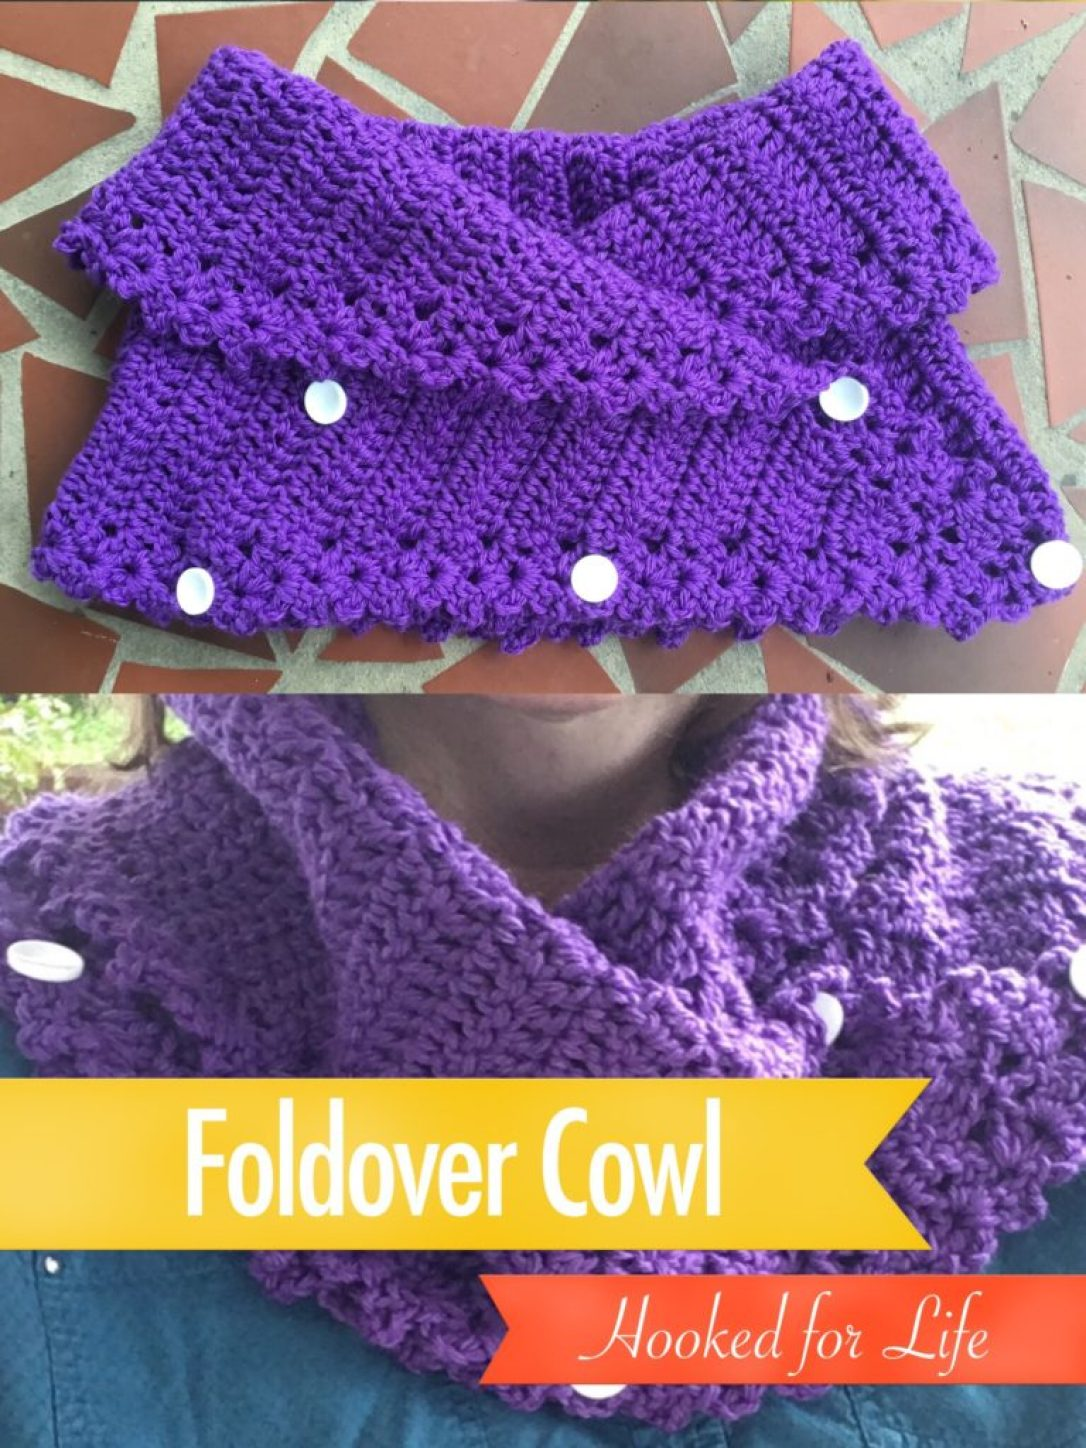 Foldover Cowl Free Crochet Pattern by Mary Beth Temple for Hooked for Life